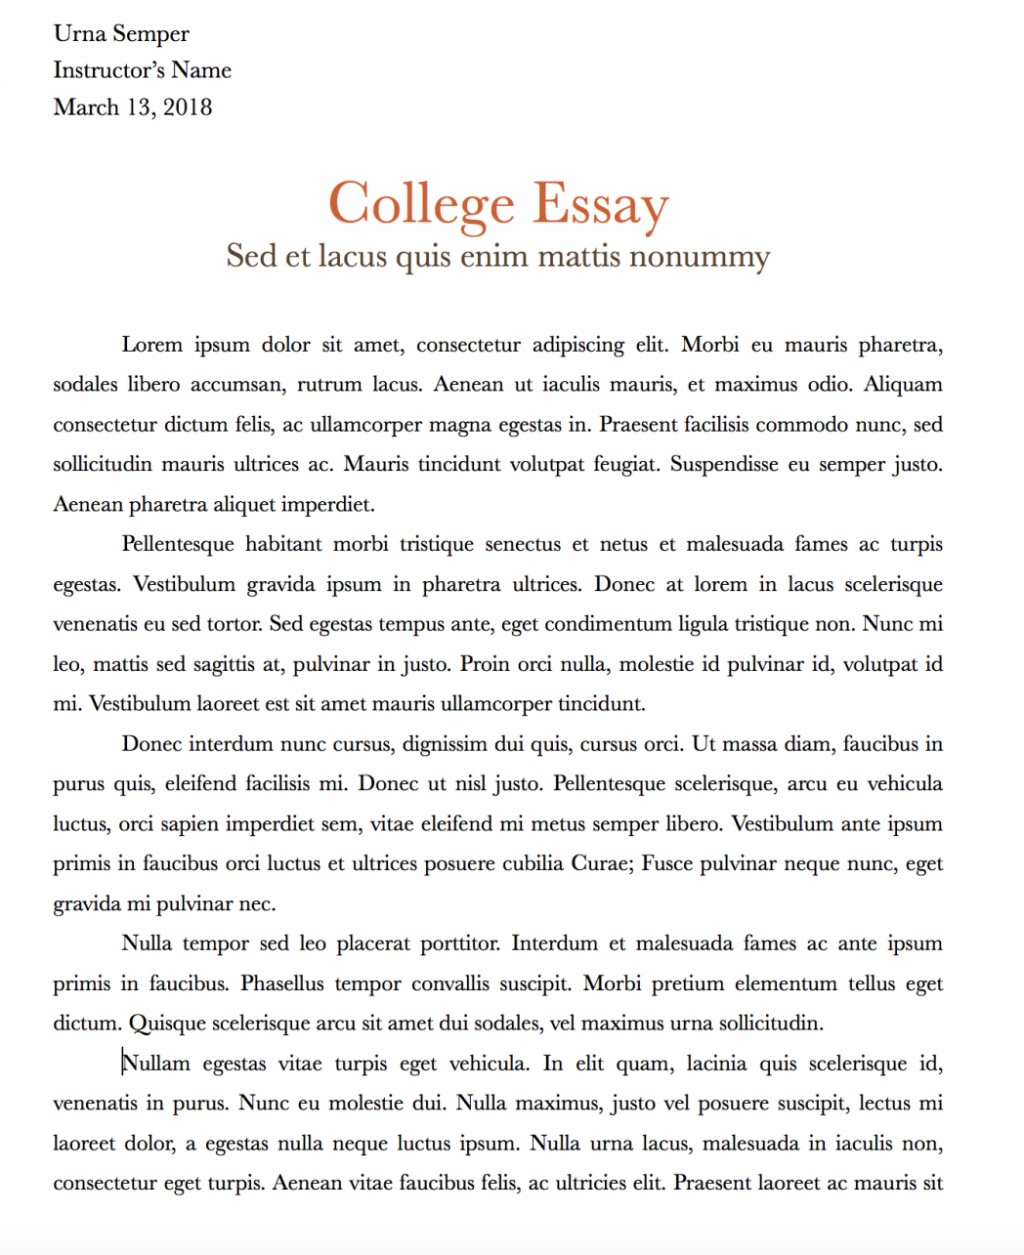 002 Essay Example How To Start Off An Write Interesting And Captivating College Examples Ctwrvkoshcimzkxyhyl8 With Parag Scholarship About Yourself Excellent The First Body Paragraph In A Good Your Life 3 Large